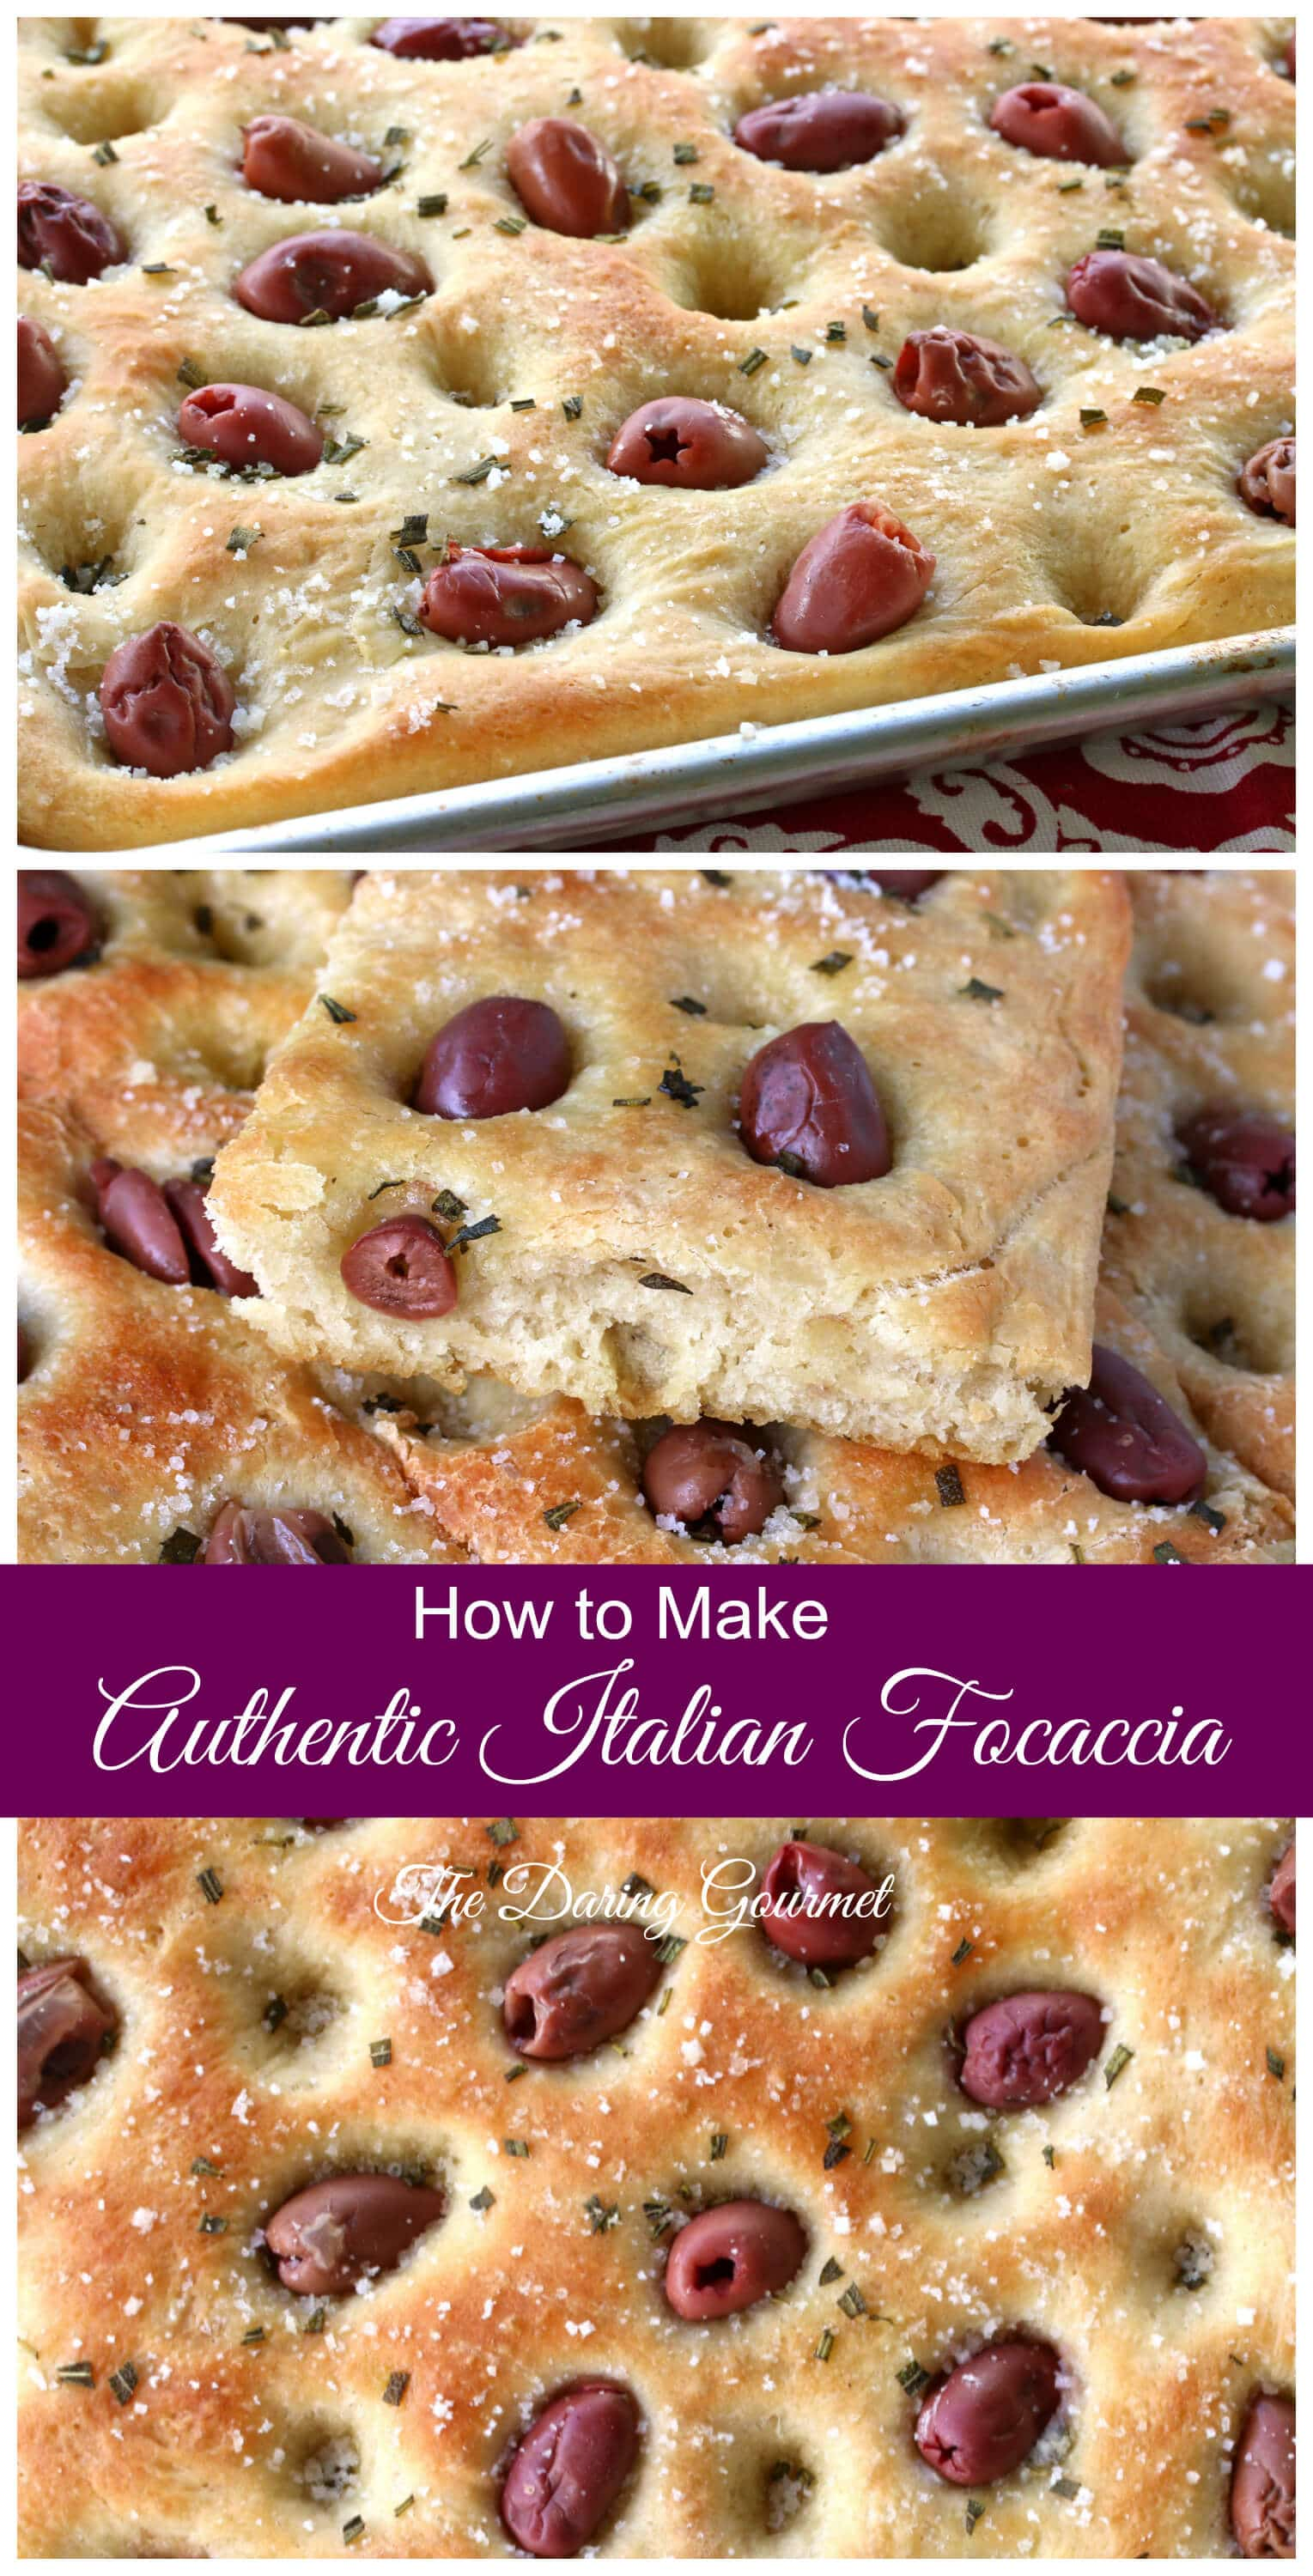 how to make authentic focaccia italian olives rosemary best recipe